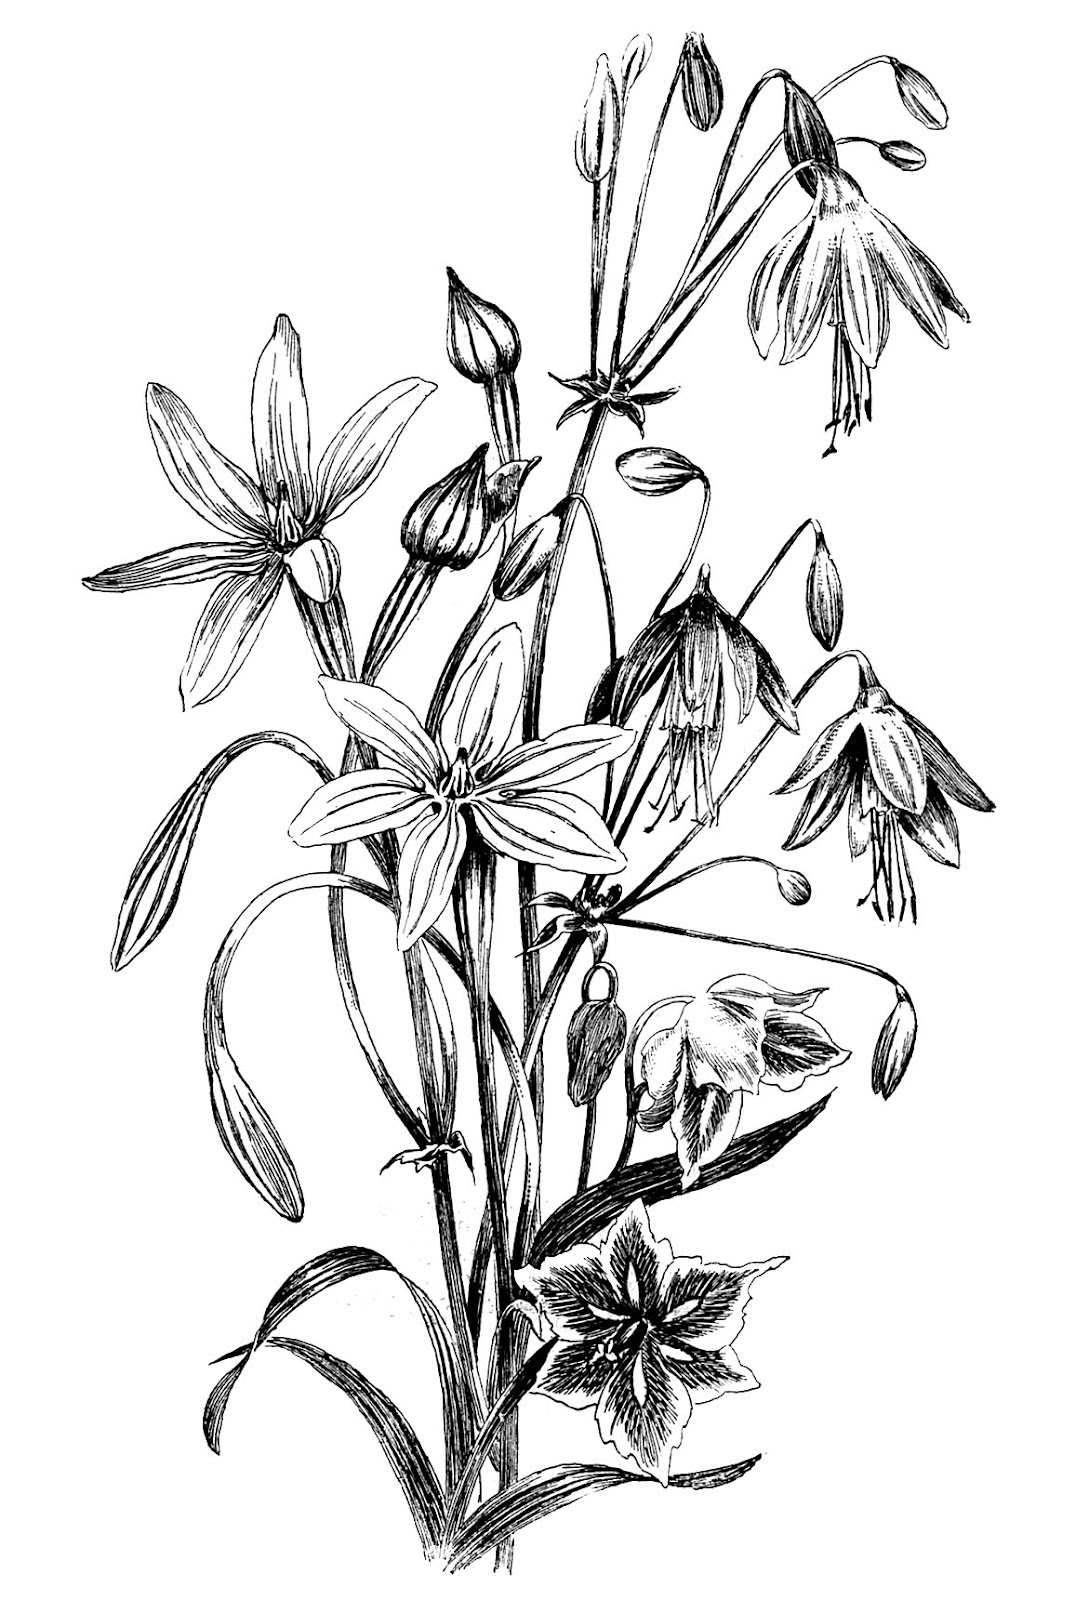 coloring flower clipart black and white black and white floral drawing the graphics fairy black flower coloring clipart white and